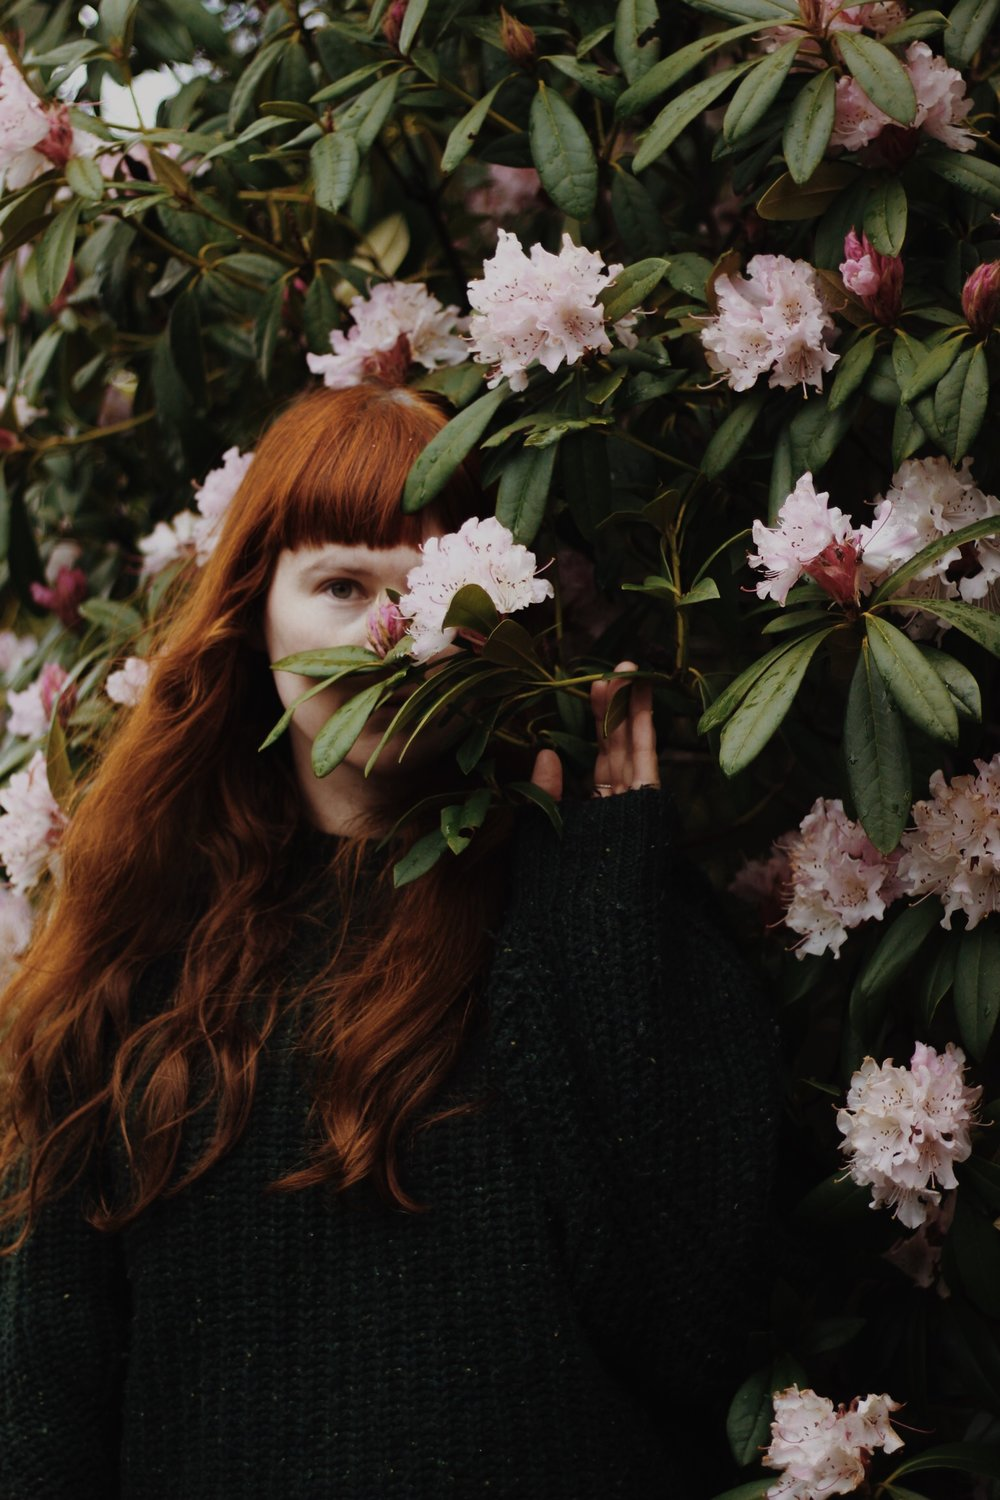 Girl, Flowers, Red Hair, Rhododendron